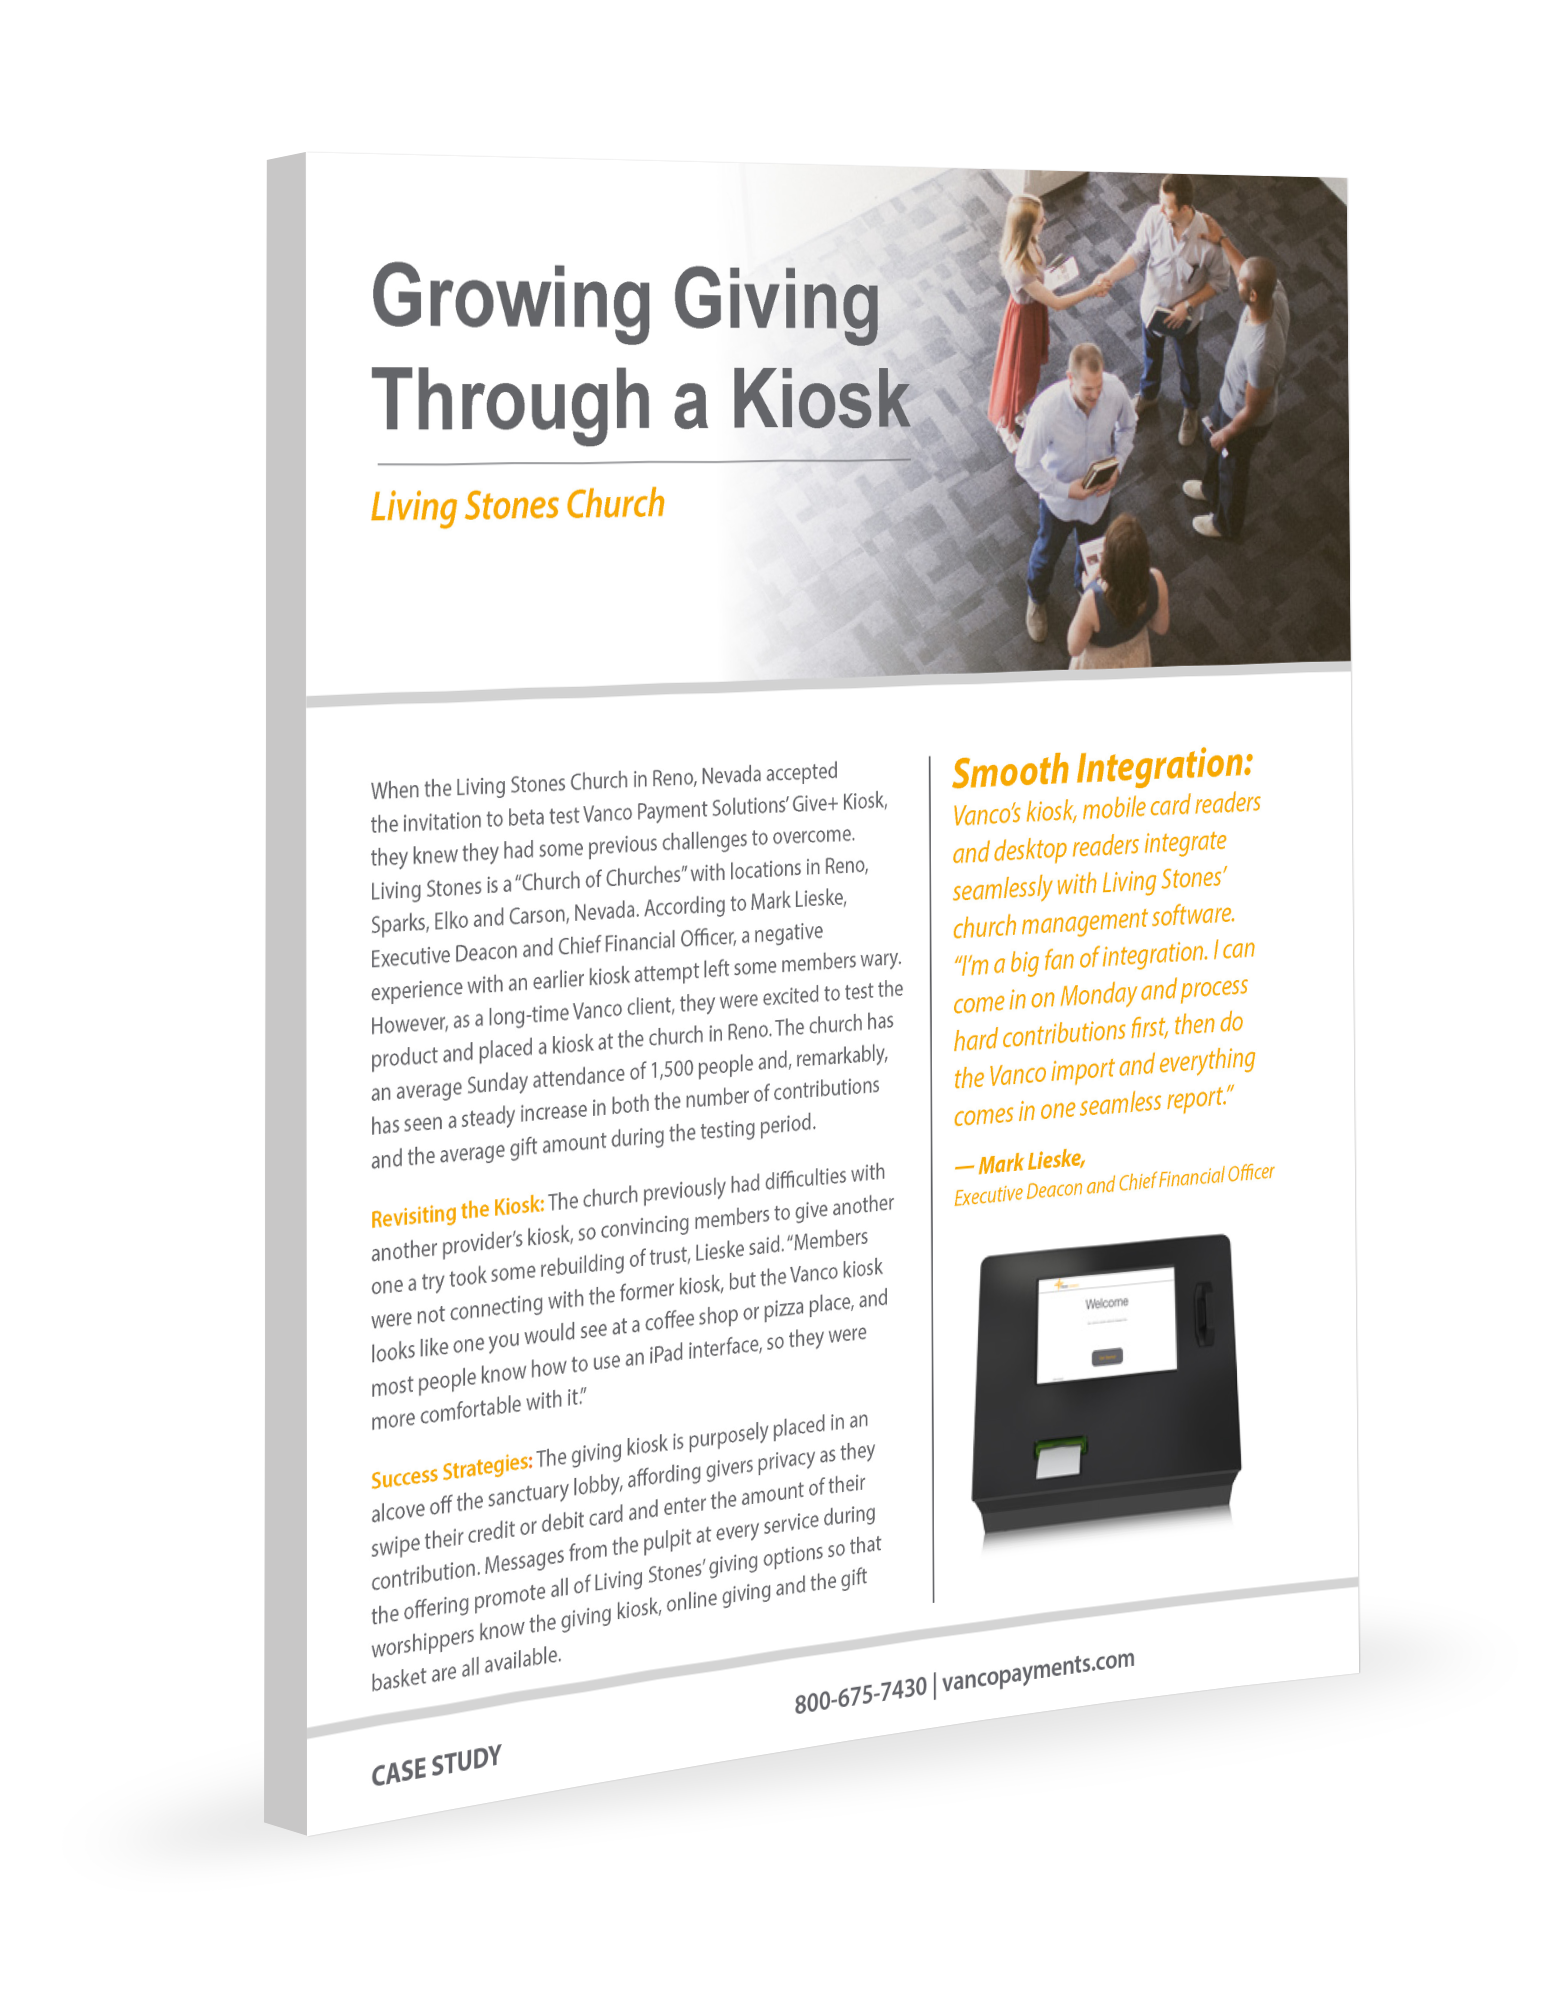 Growing Giving Through Kiosk